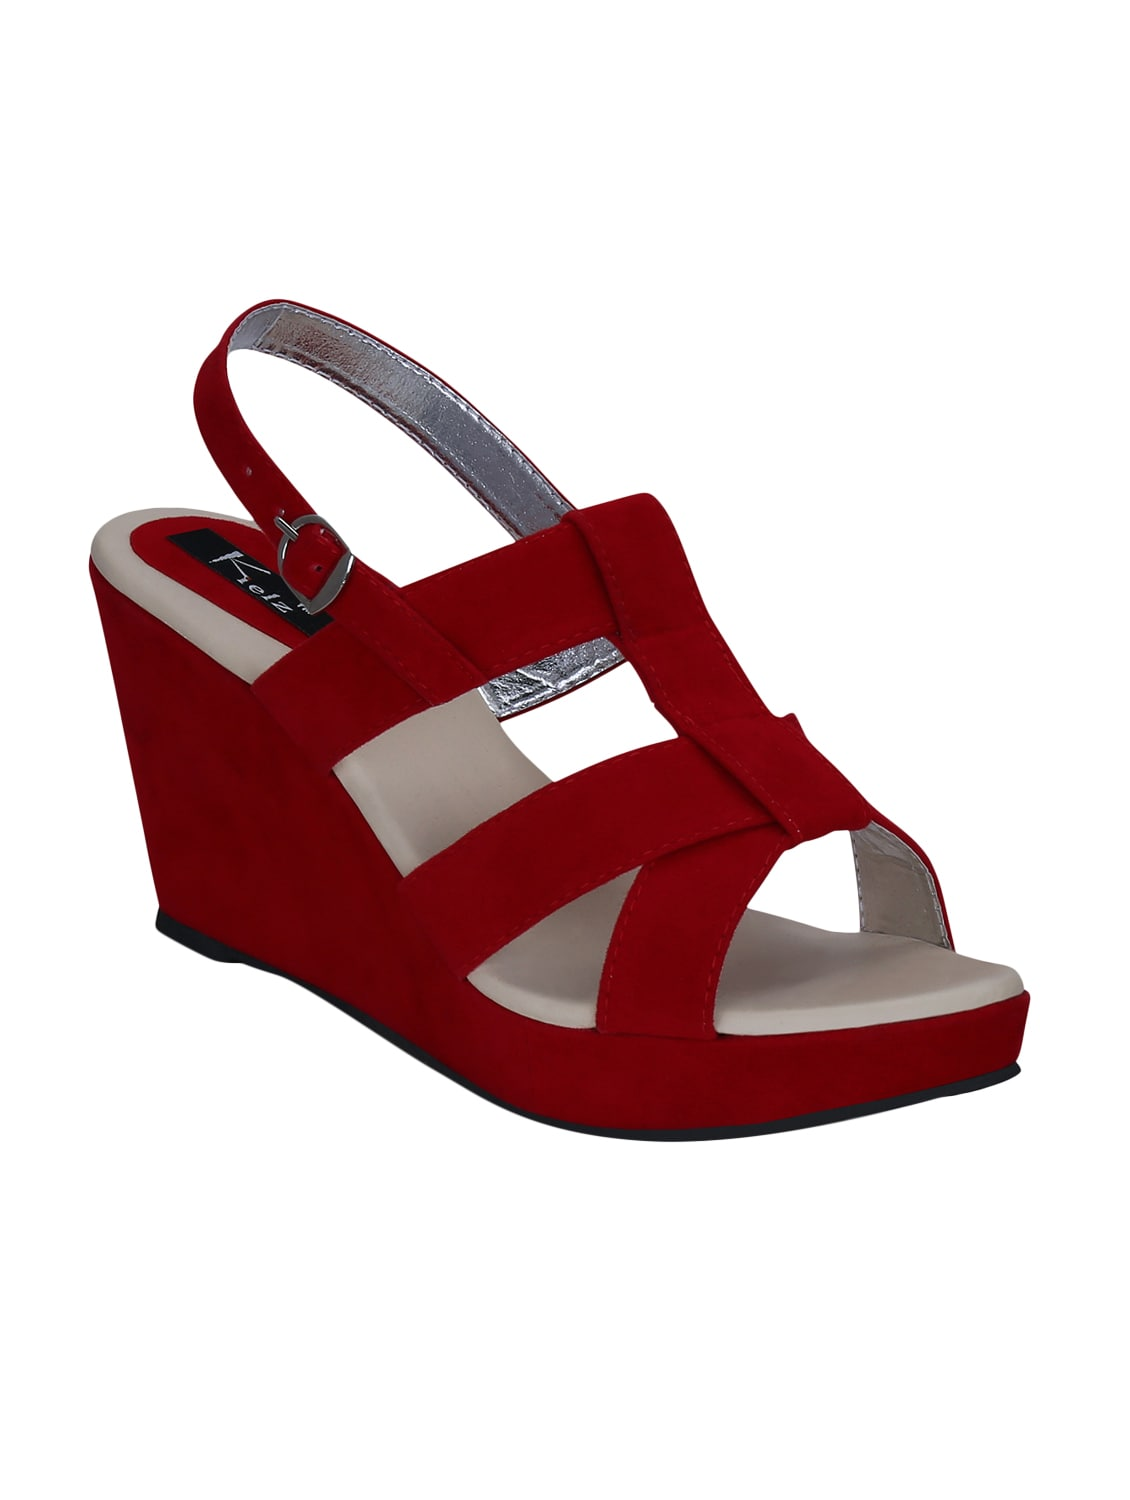 80b4f777d3cf Buy Kielz-red-wedge-sandals for Women from Kielz for ₹796 at 47% off